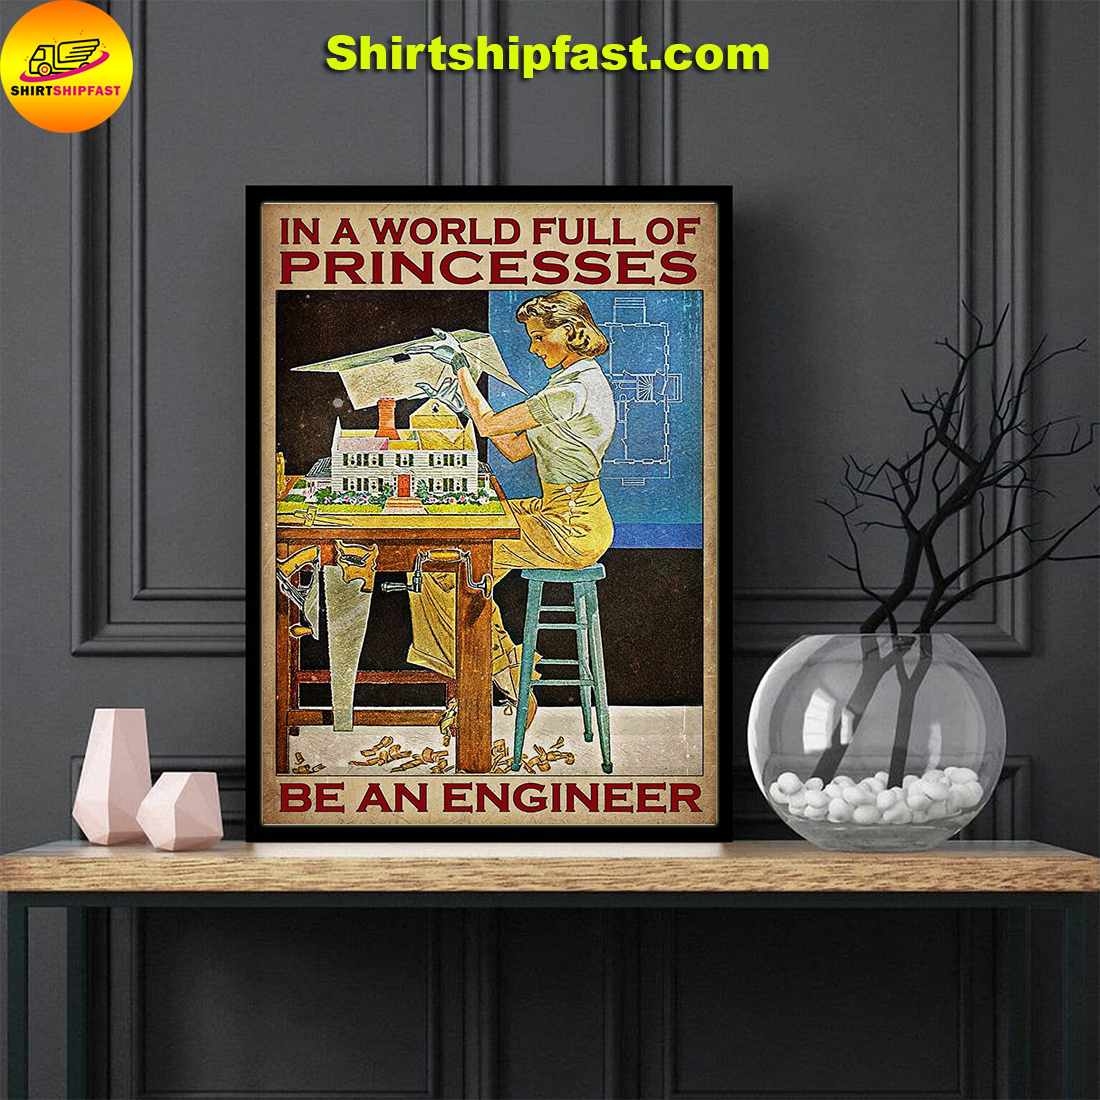 In a world full of princesses be an engineer poster - Picture 3